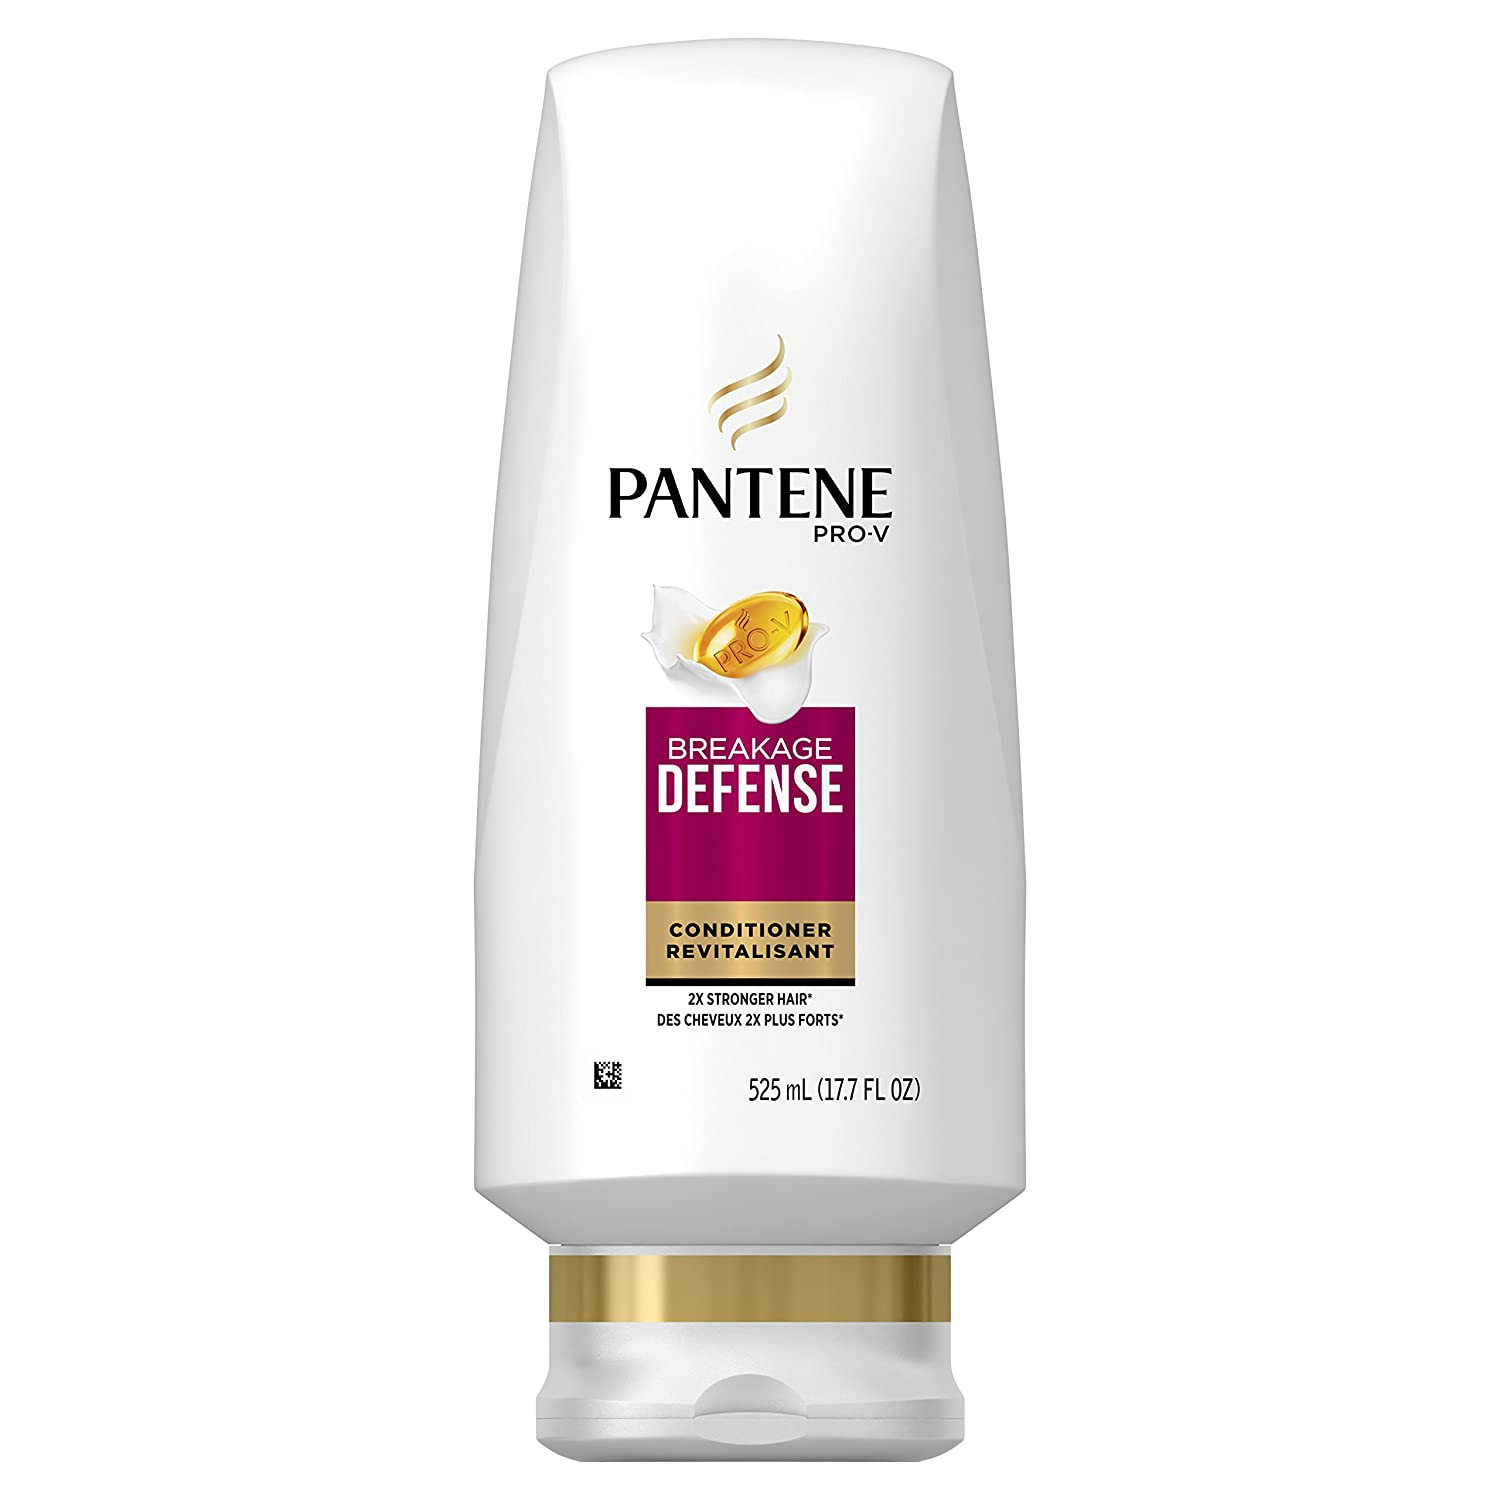 Pantene Pro-V Breakage Defense Shampoo, 595 mL, packaging may vary Procter and Gamble